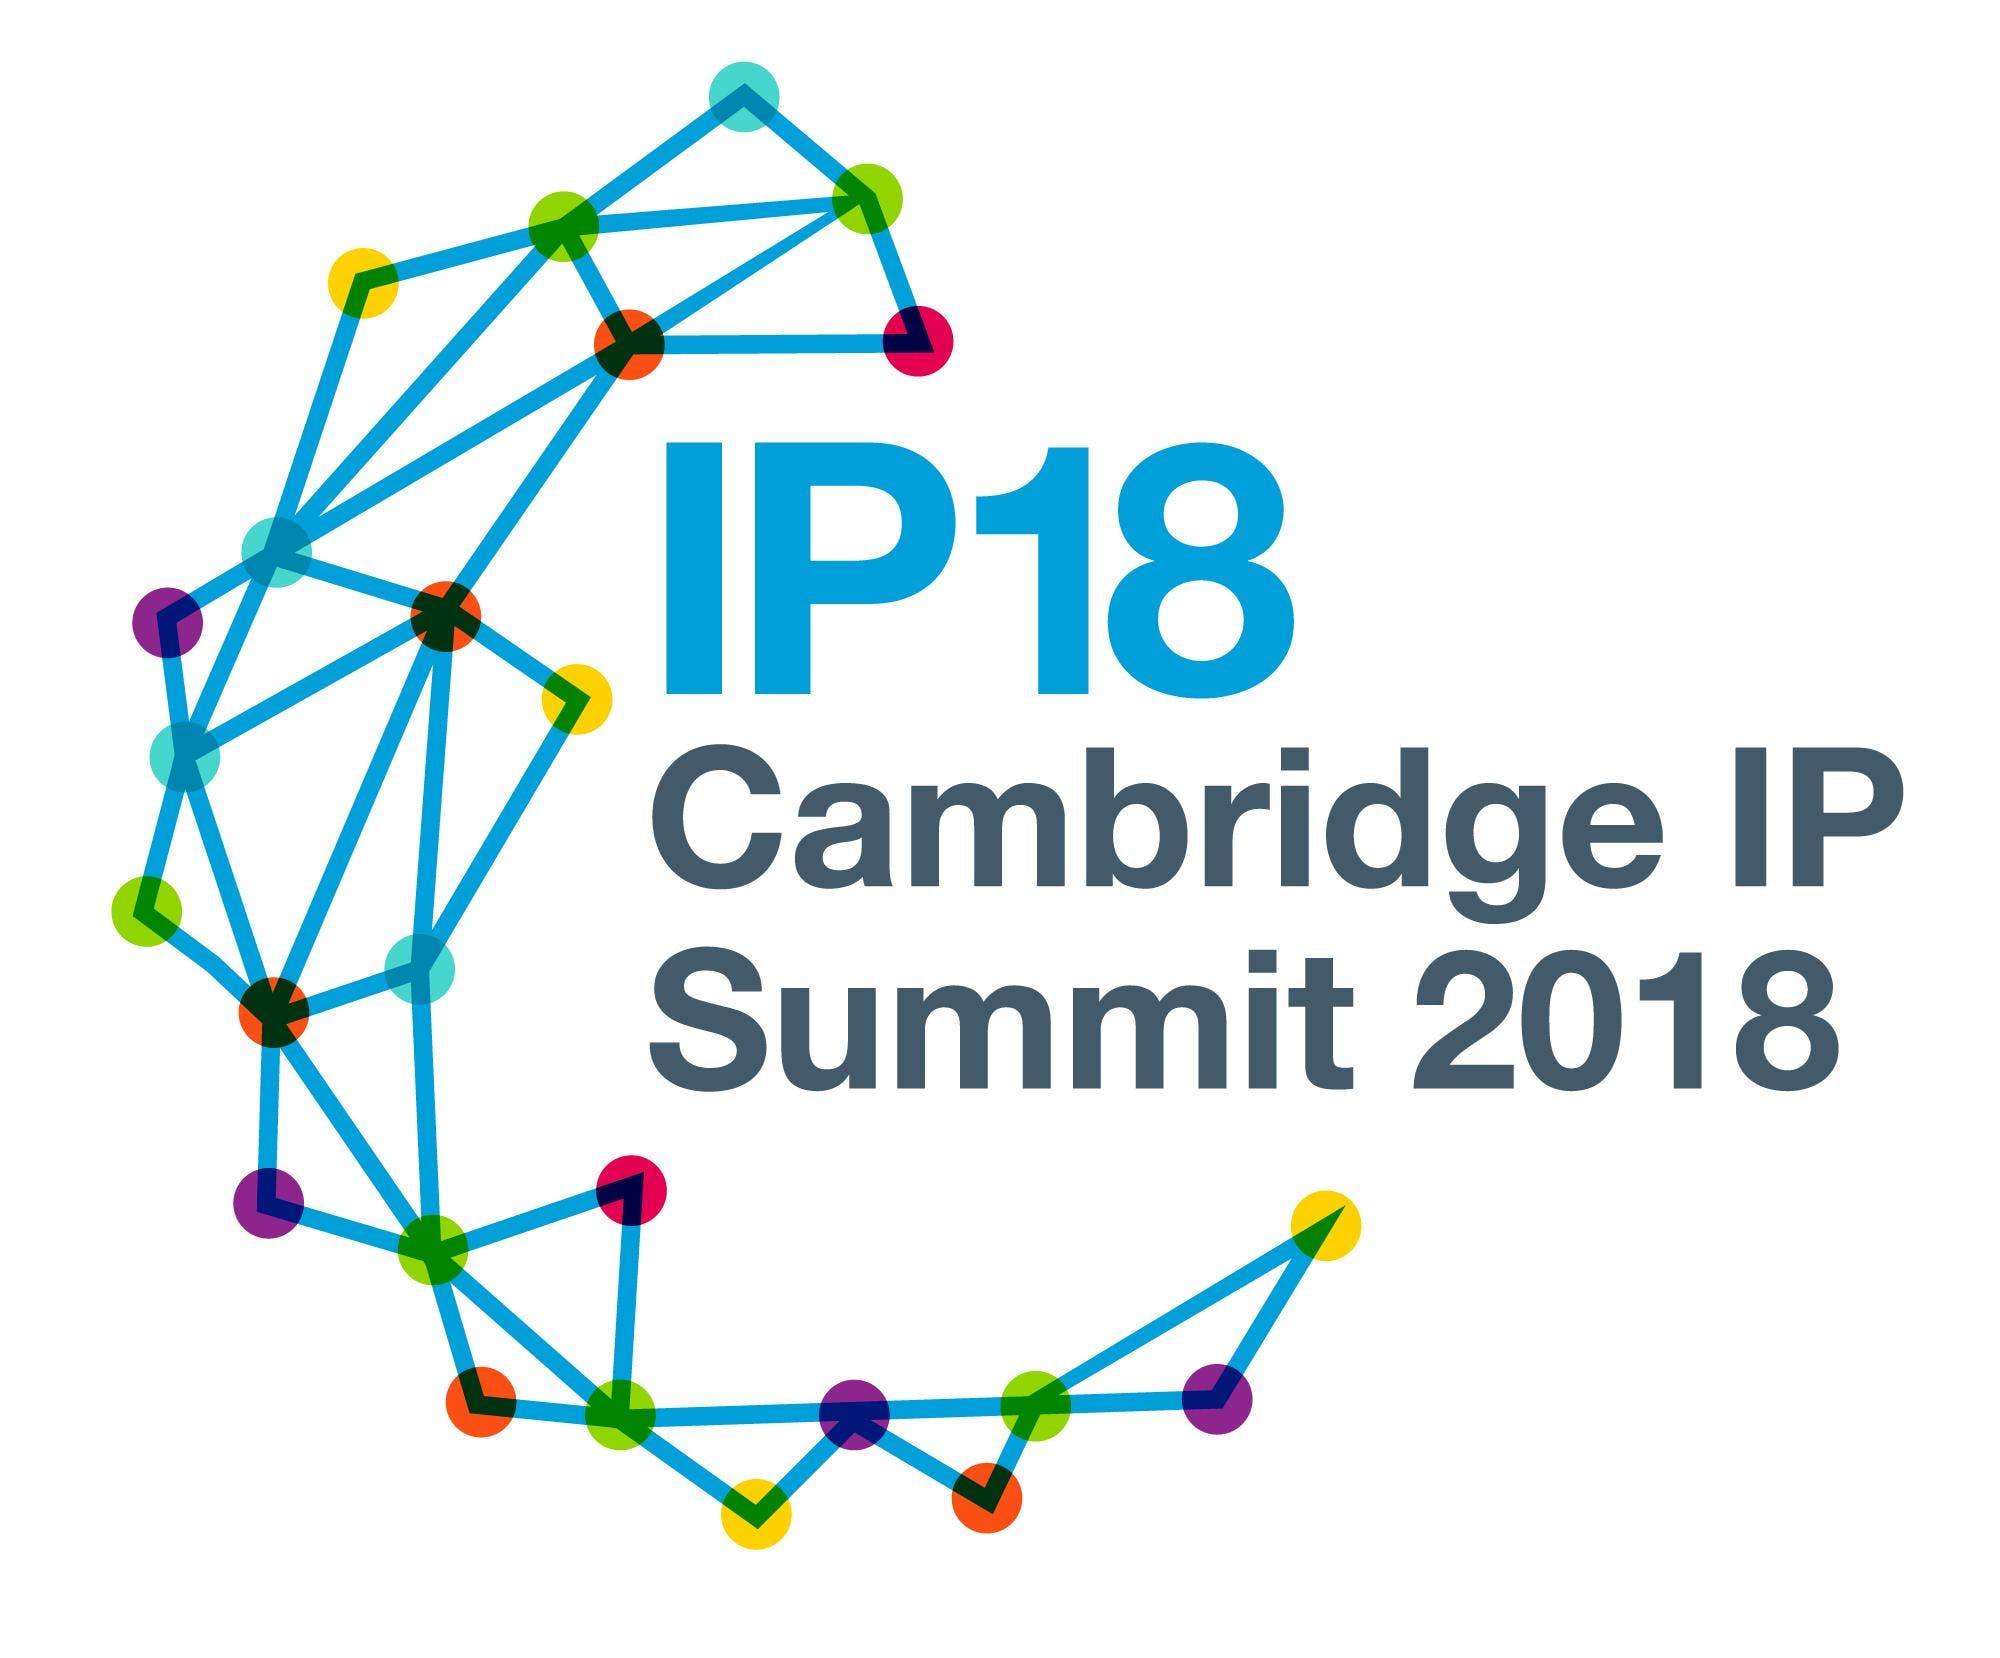 Cambridge IP Summit 2018